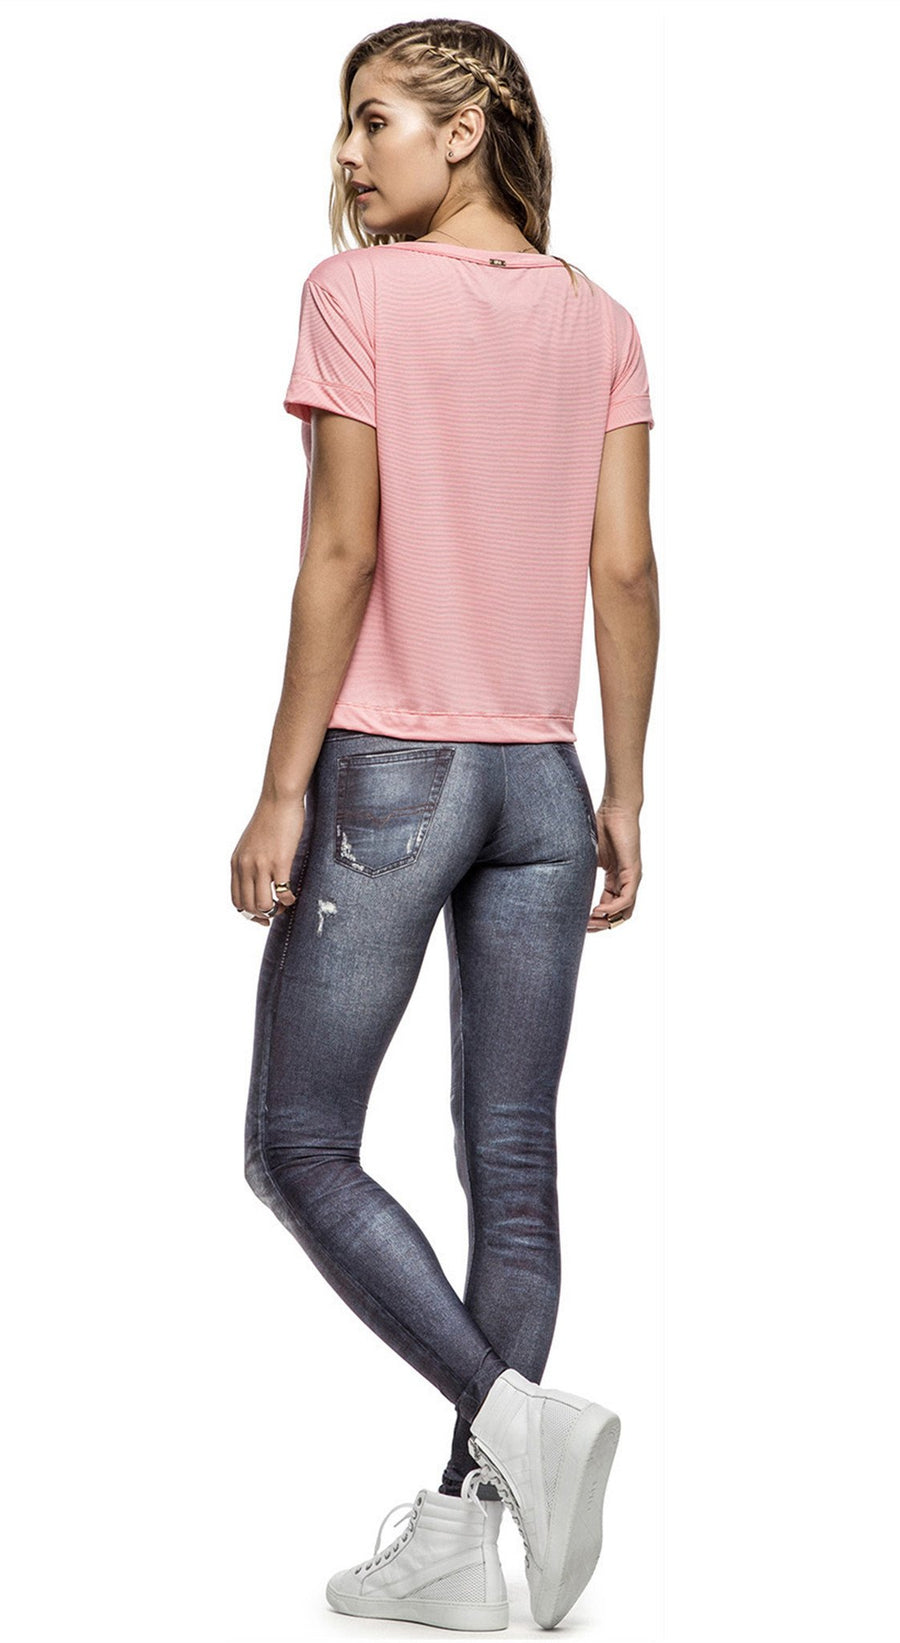 Brazilian Jeans Legging - Your Way Denim-Tight